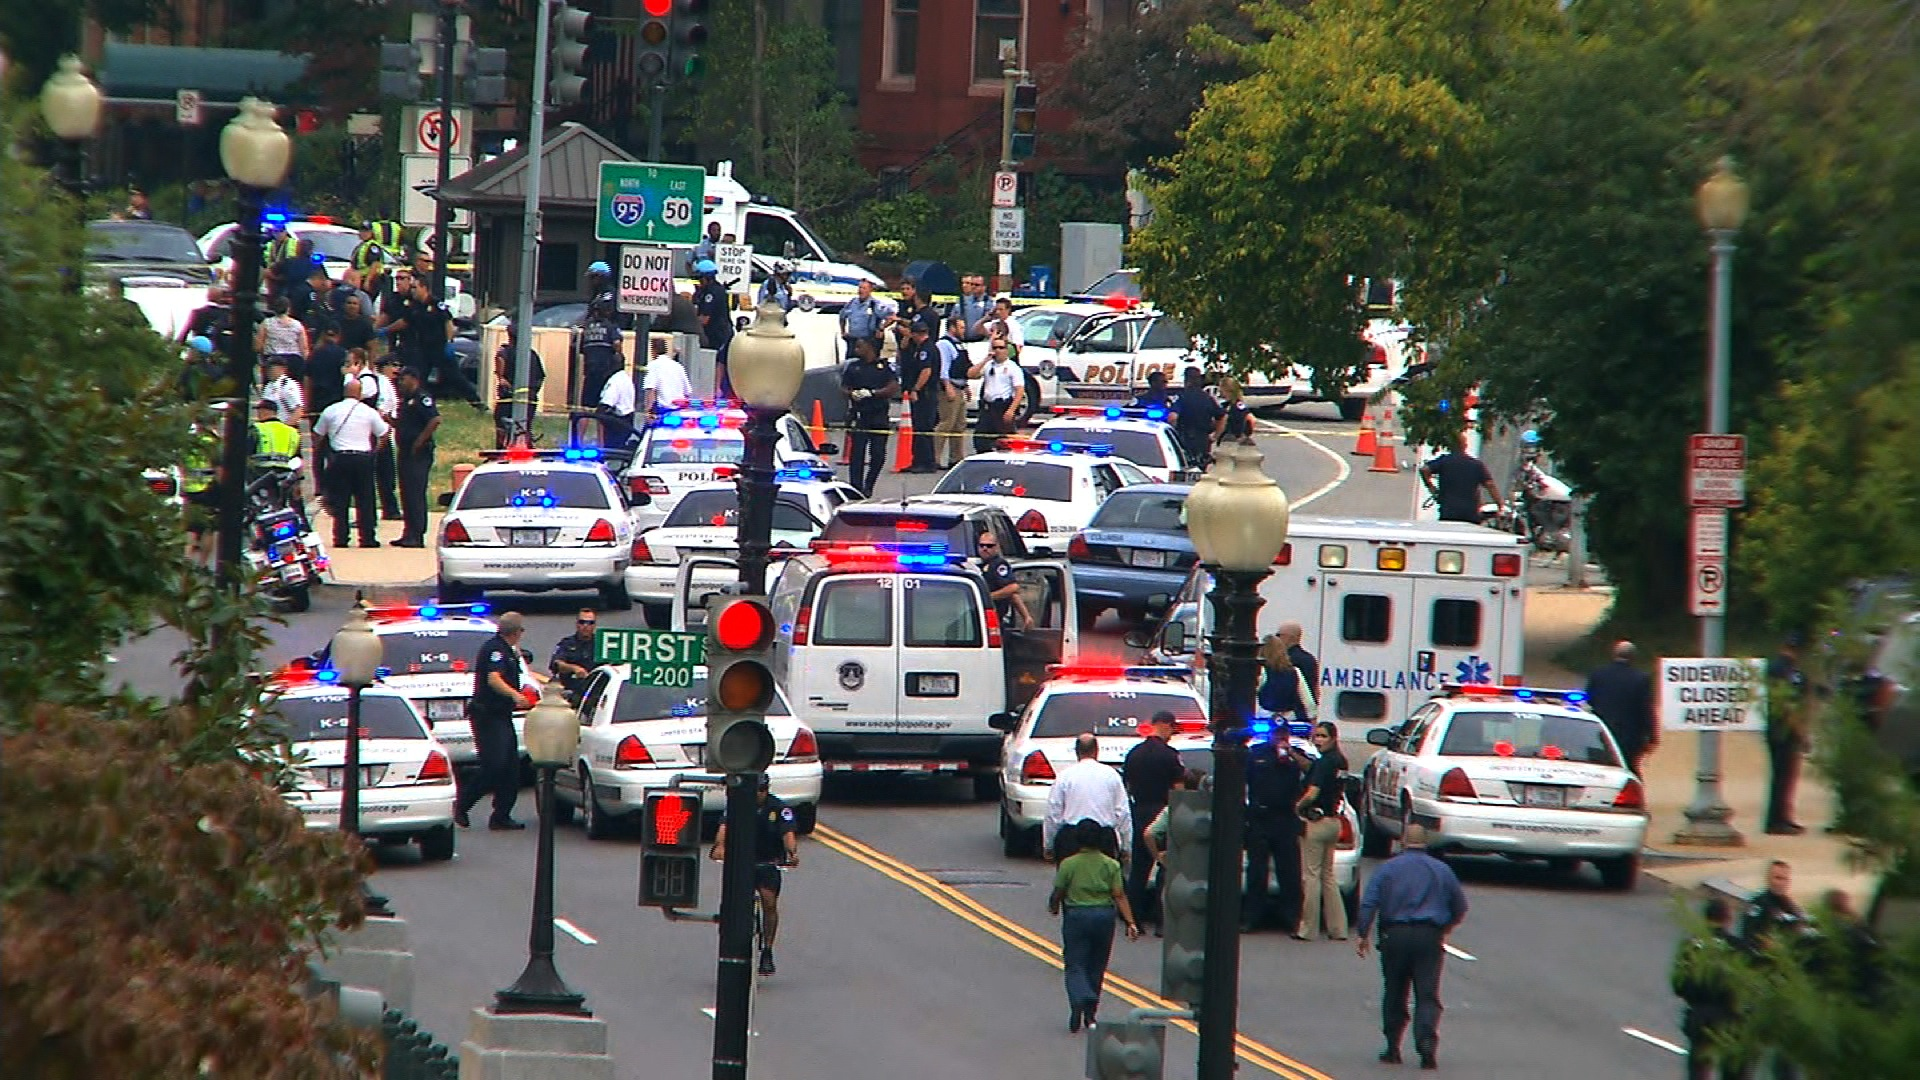 Capitol police respond to reports of shots fired on Capitol Hill Thursday, October 3, 2013 in Washington, D.C.